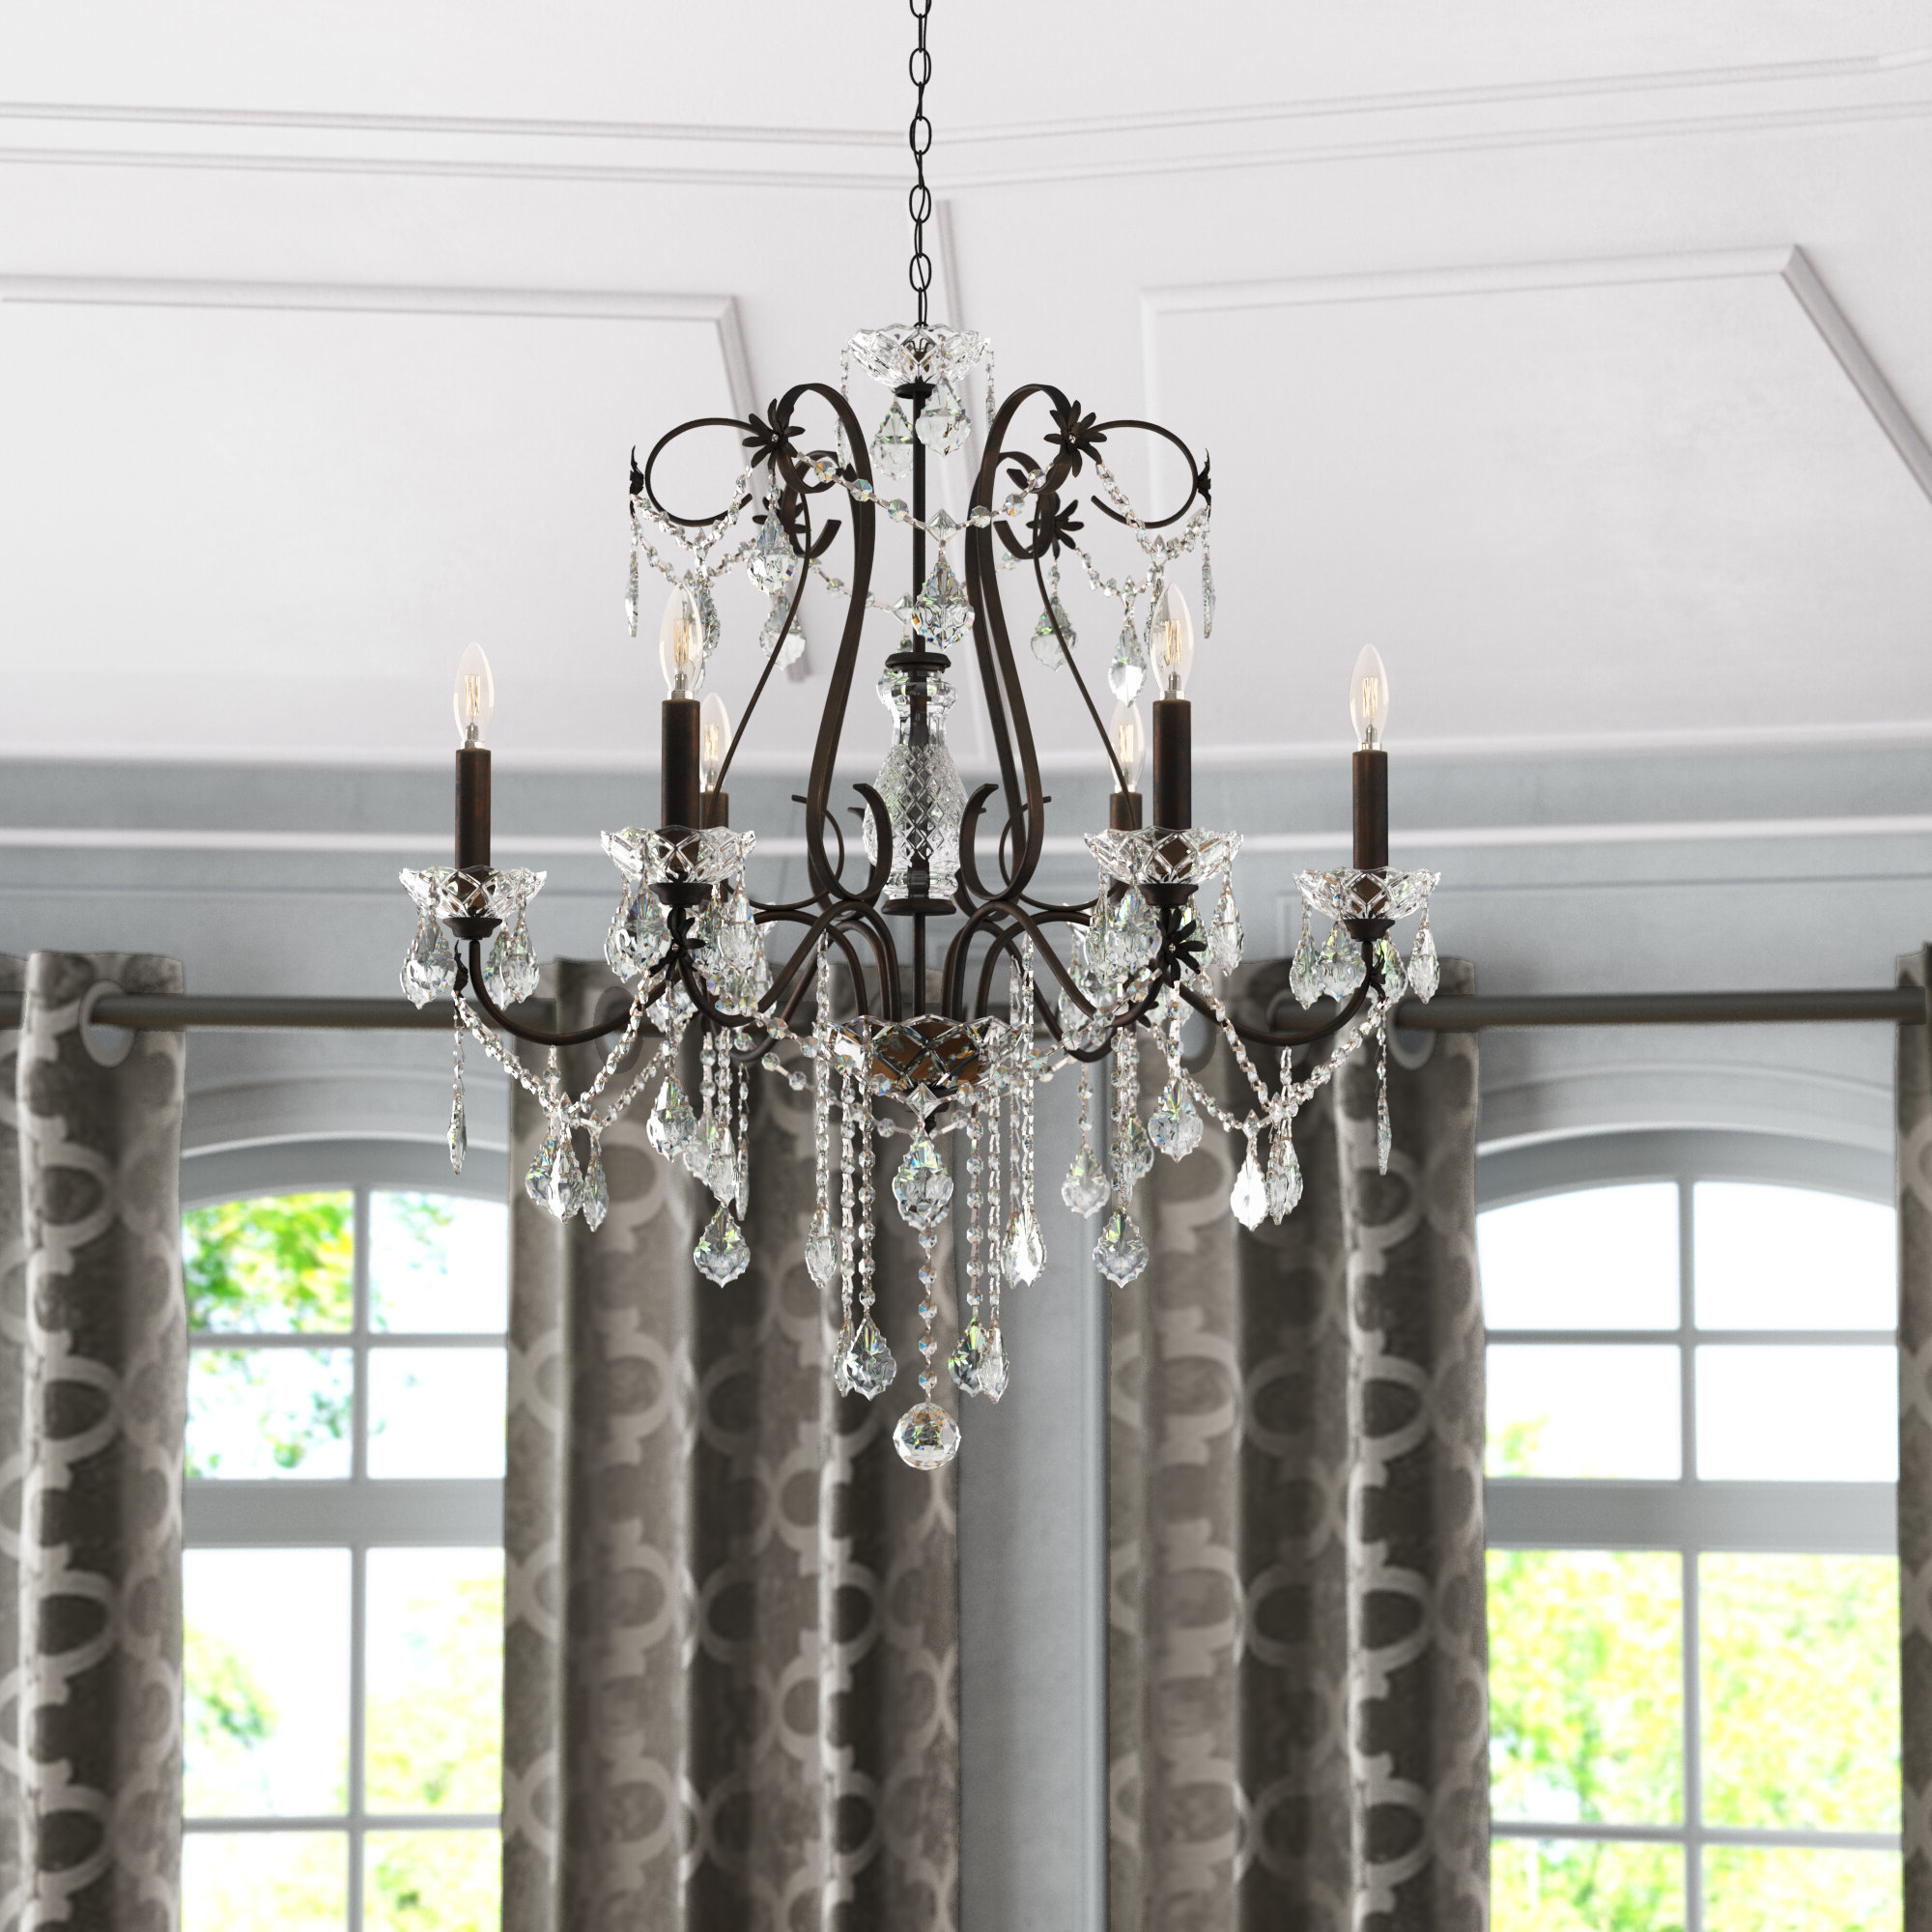 Hesse 5 Light Candle-Style Chandeliers regarding Well-known Thao 6-Light Candle Style Chandelier